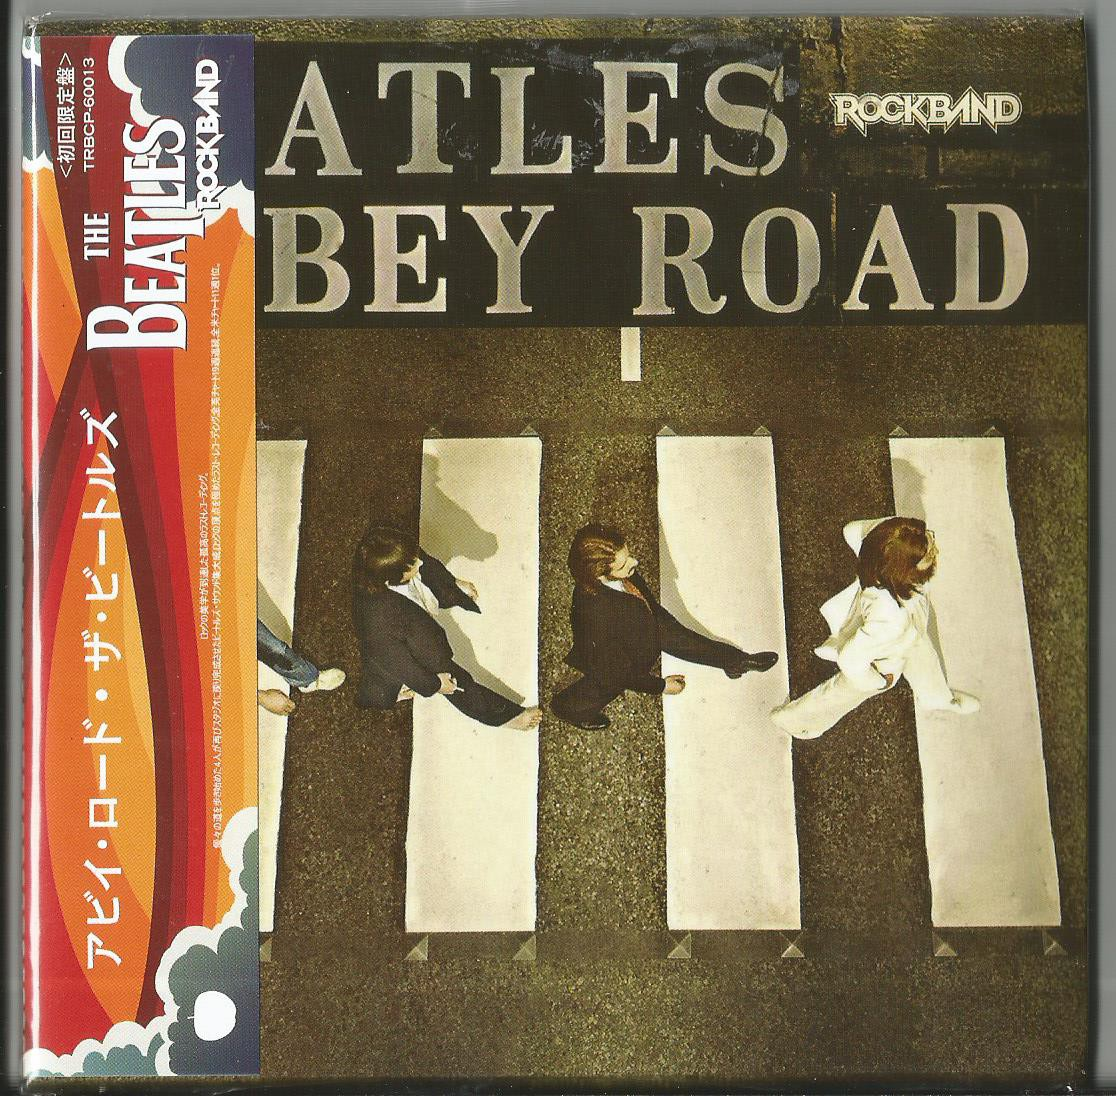 BEATLES - Abbey Road - Rockband Version 2009 (newly Remixed And Remastered Tracks, Full Versions Of Songs, Jap